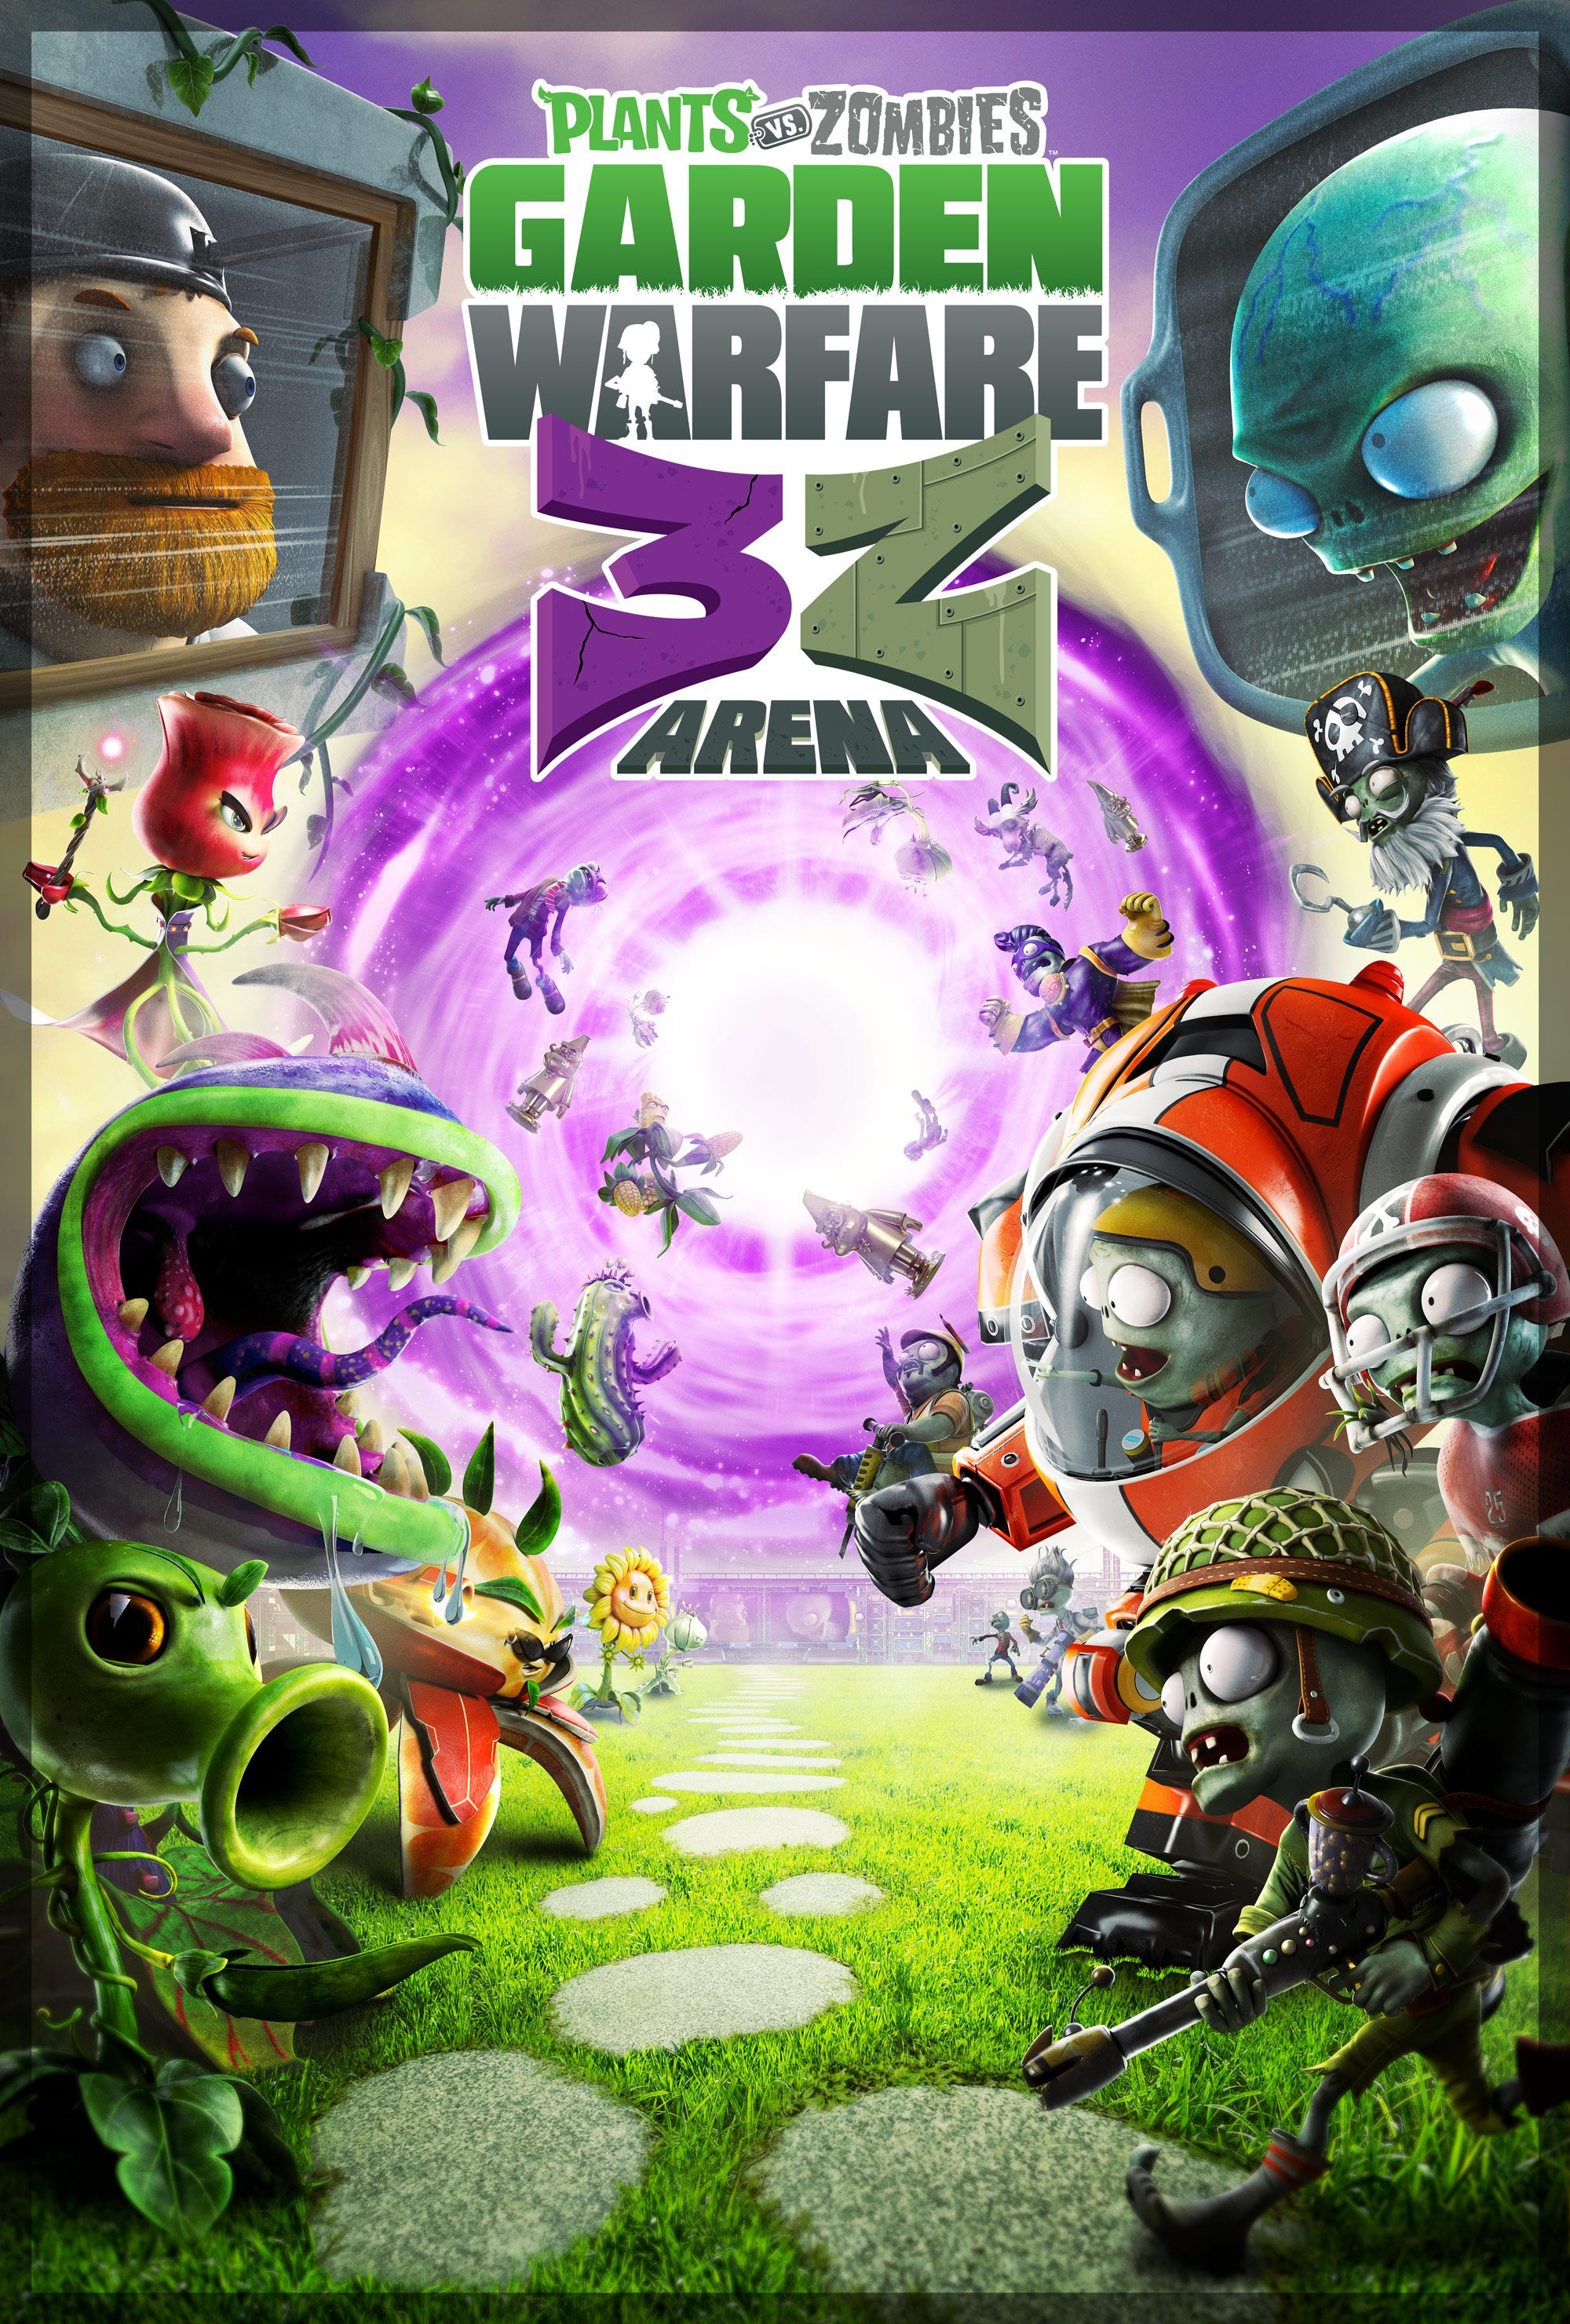 Plants vs Zombies Garden Warfare 3Z Arena Plants vs Zombies